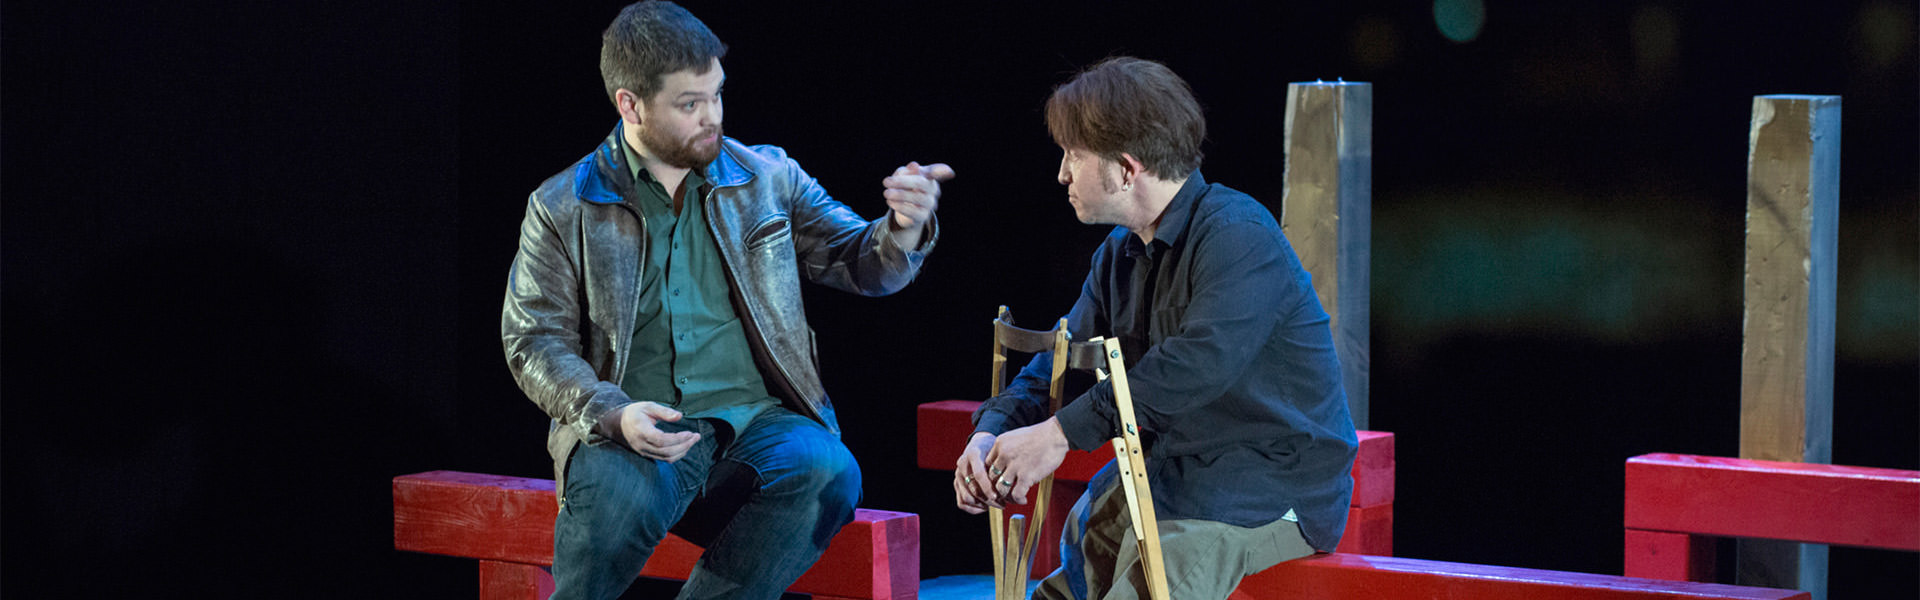 A scene from opening night of Crippled. Actors Pat Dempsey and Paul David Power seated and talking.